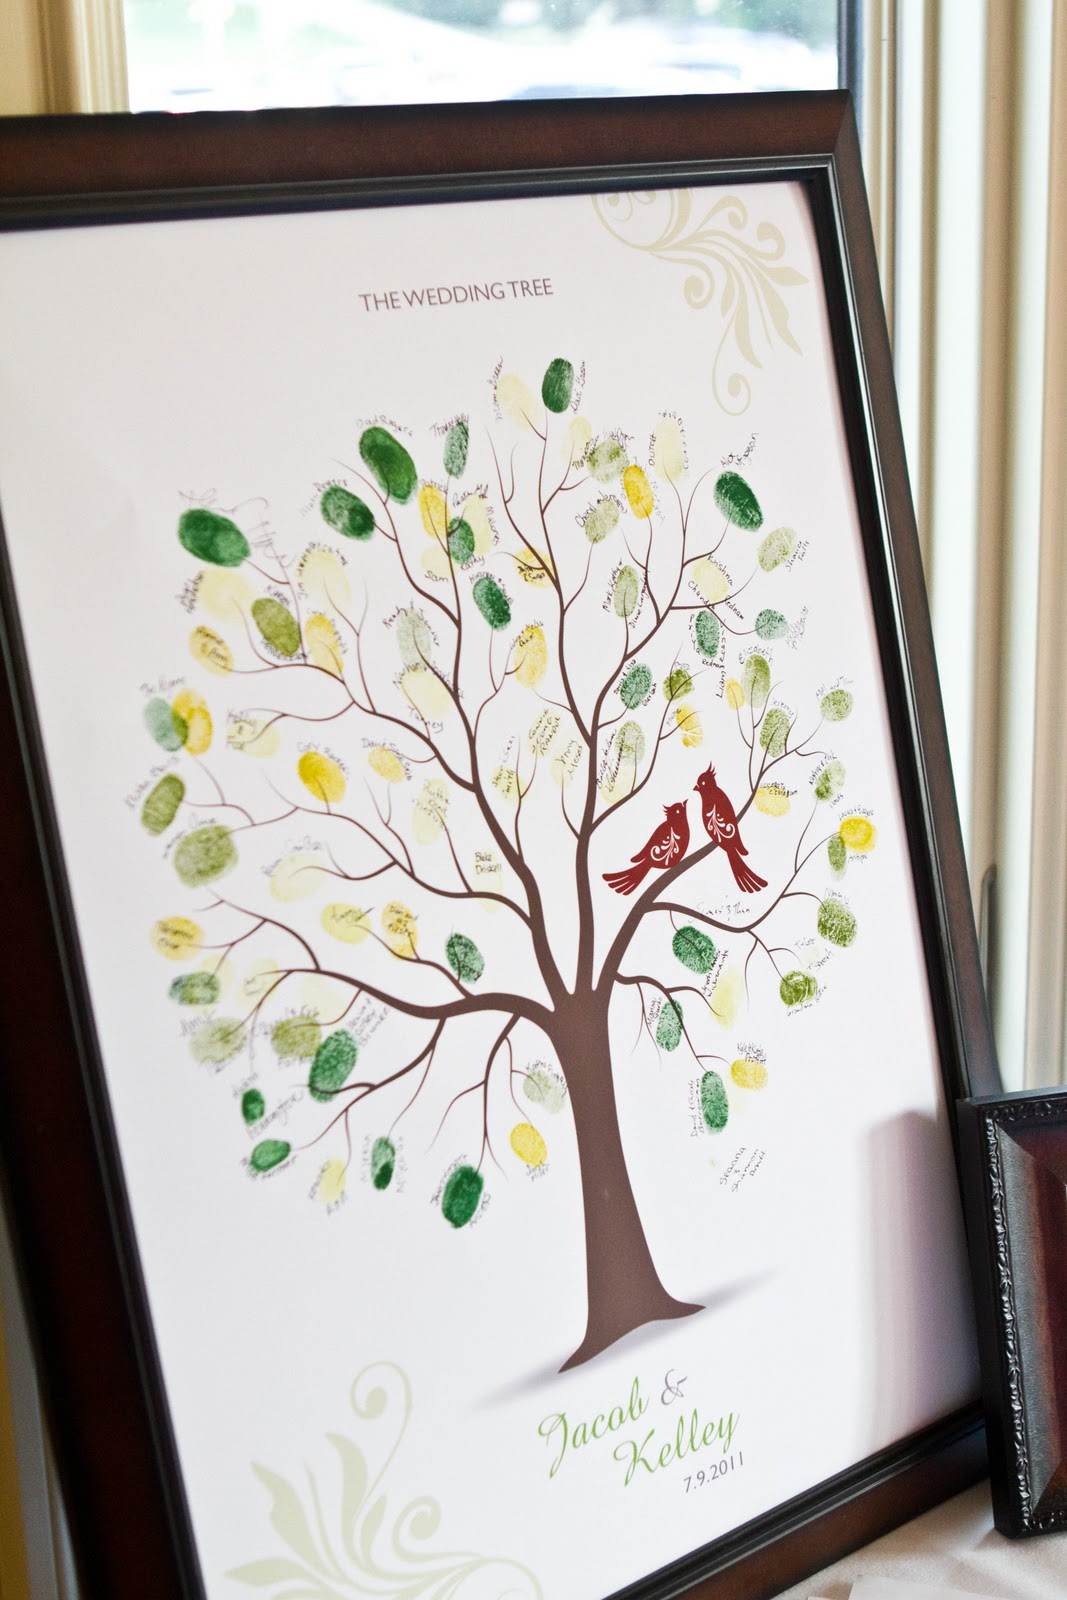 jacob and kelley july wedding at the winery wedding tree I instantly found her to be adorable inside and out She aslo introduced me to http www etsy com She ordered this wedding tree from etsy